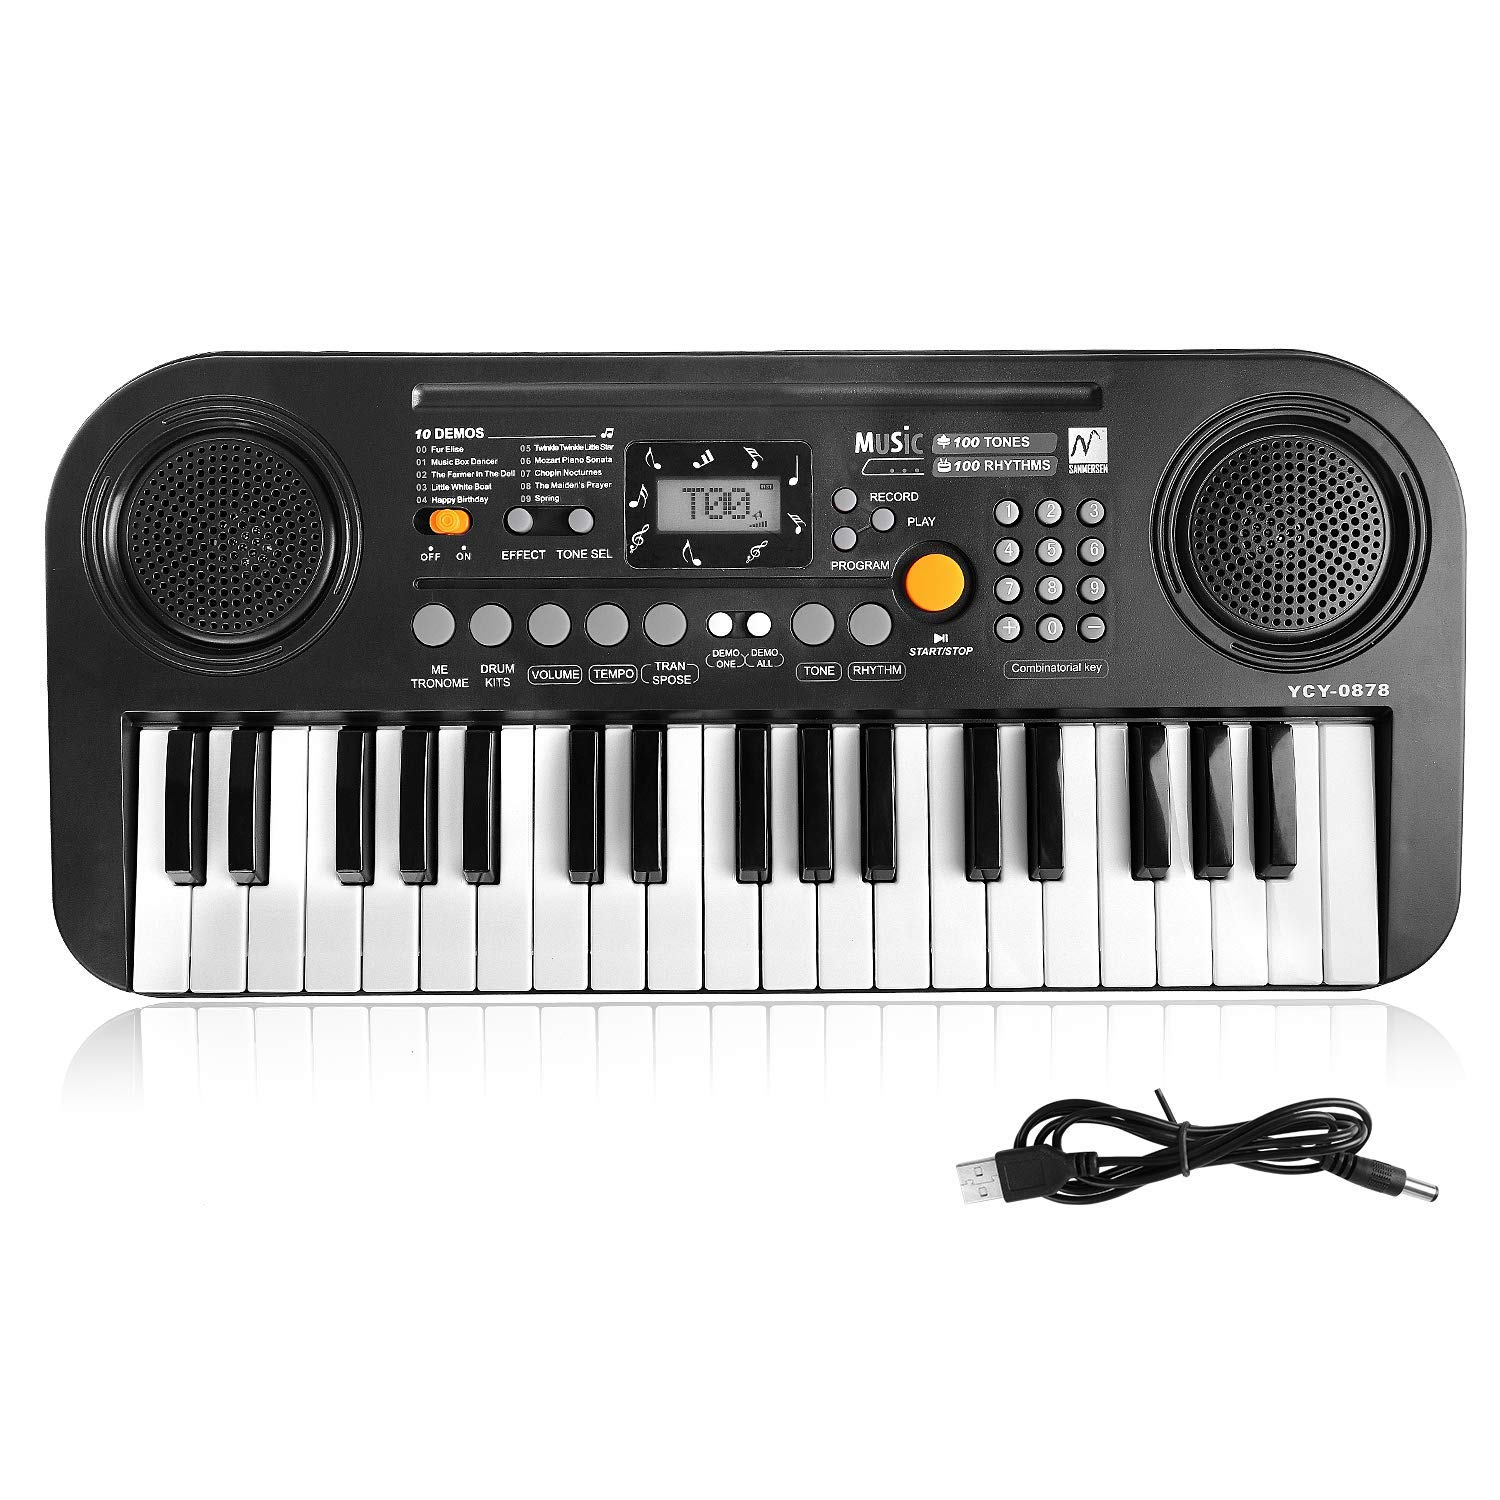 TWFRIC Kids Piano Keyboard, 37 Keys Dual-Speakers Piano for Kids LCD Screen Display Portable Keyboard 2019 Newest Piano Keyboards Music Educational Toy for Boys Girls Child (Black) by TWFRIC (Image #1)